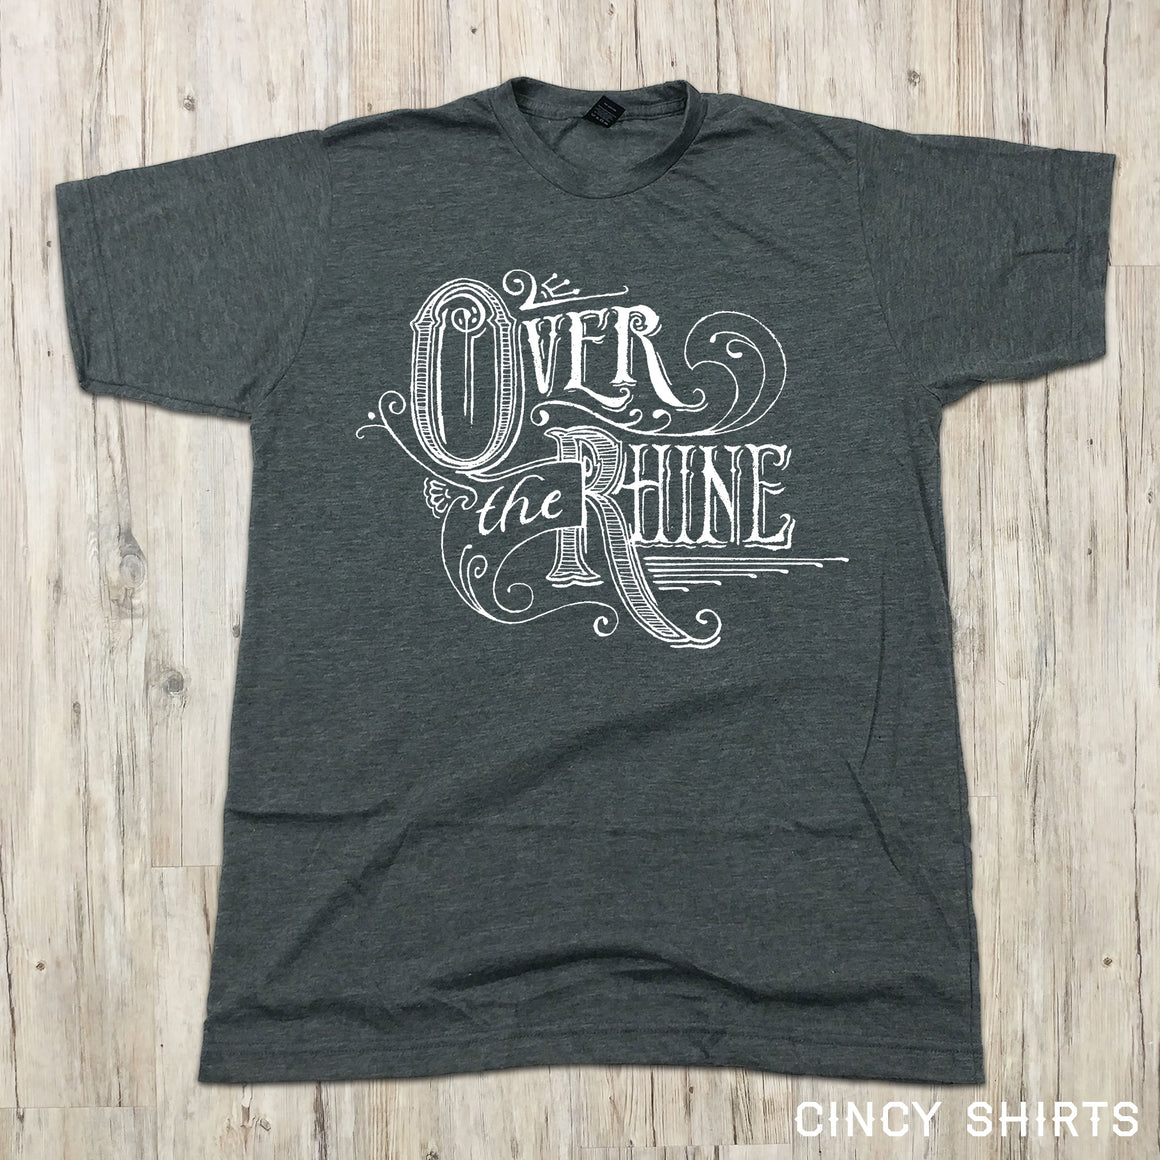 Over The Rhine Script Logo - Cincy Shirts